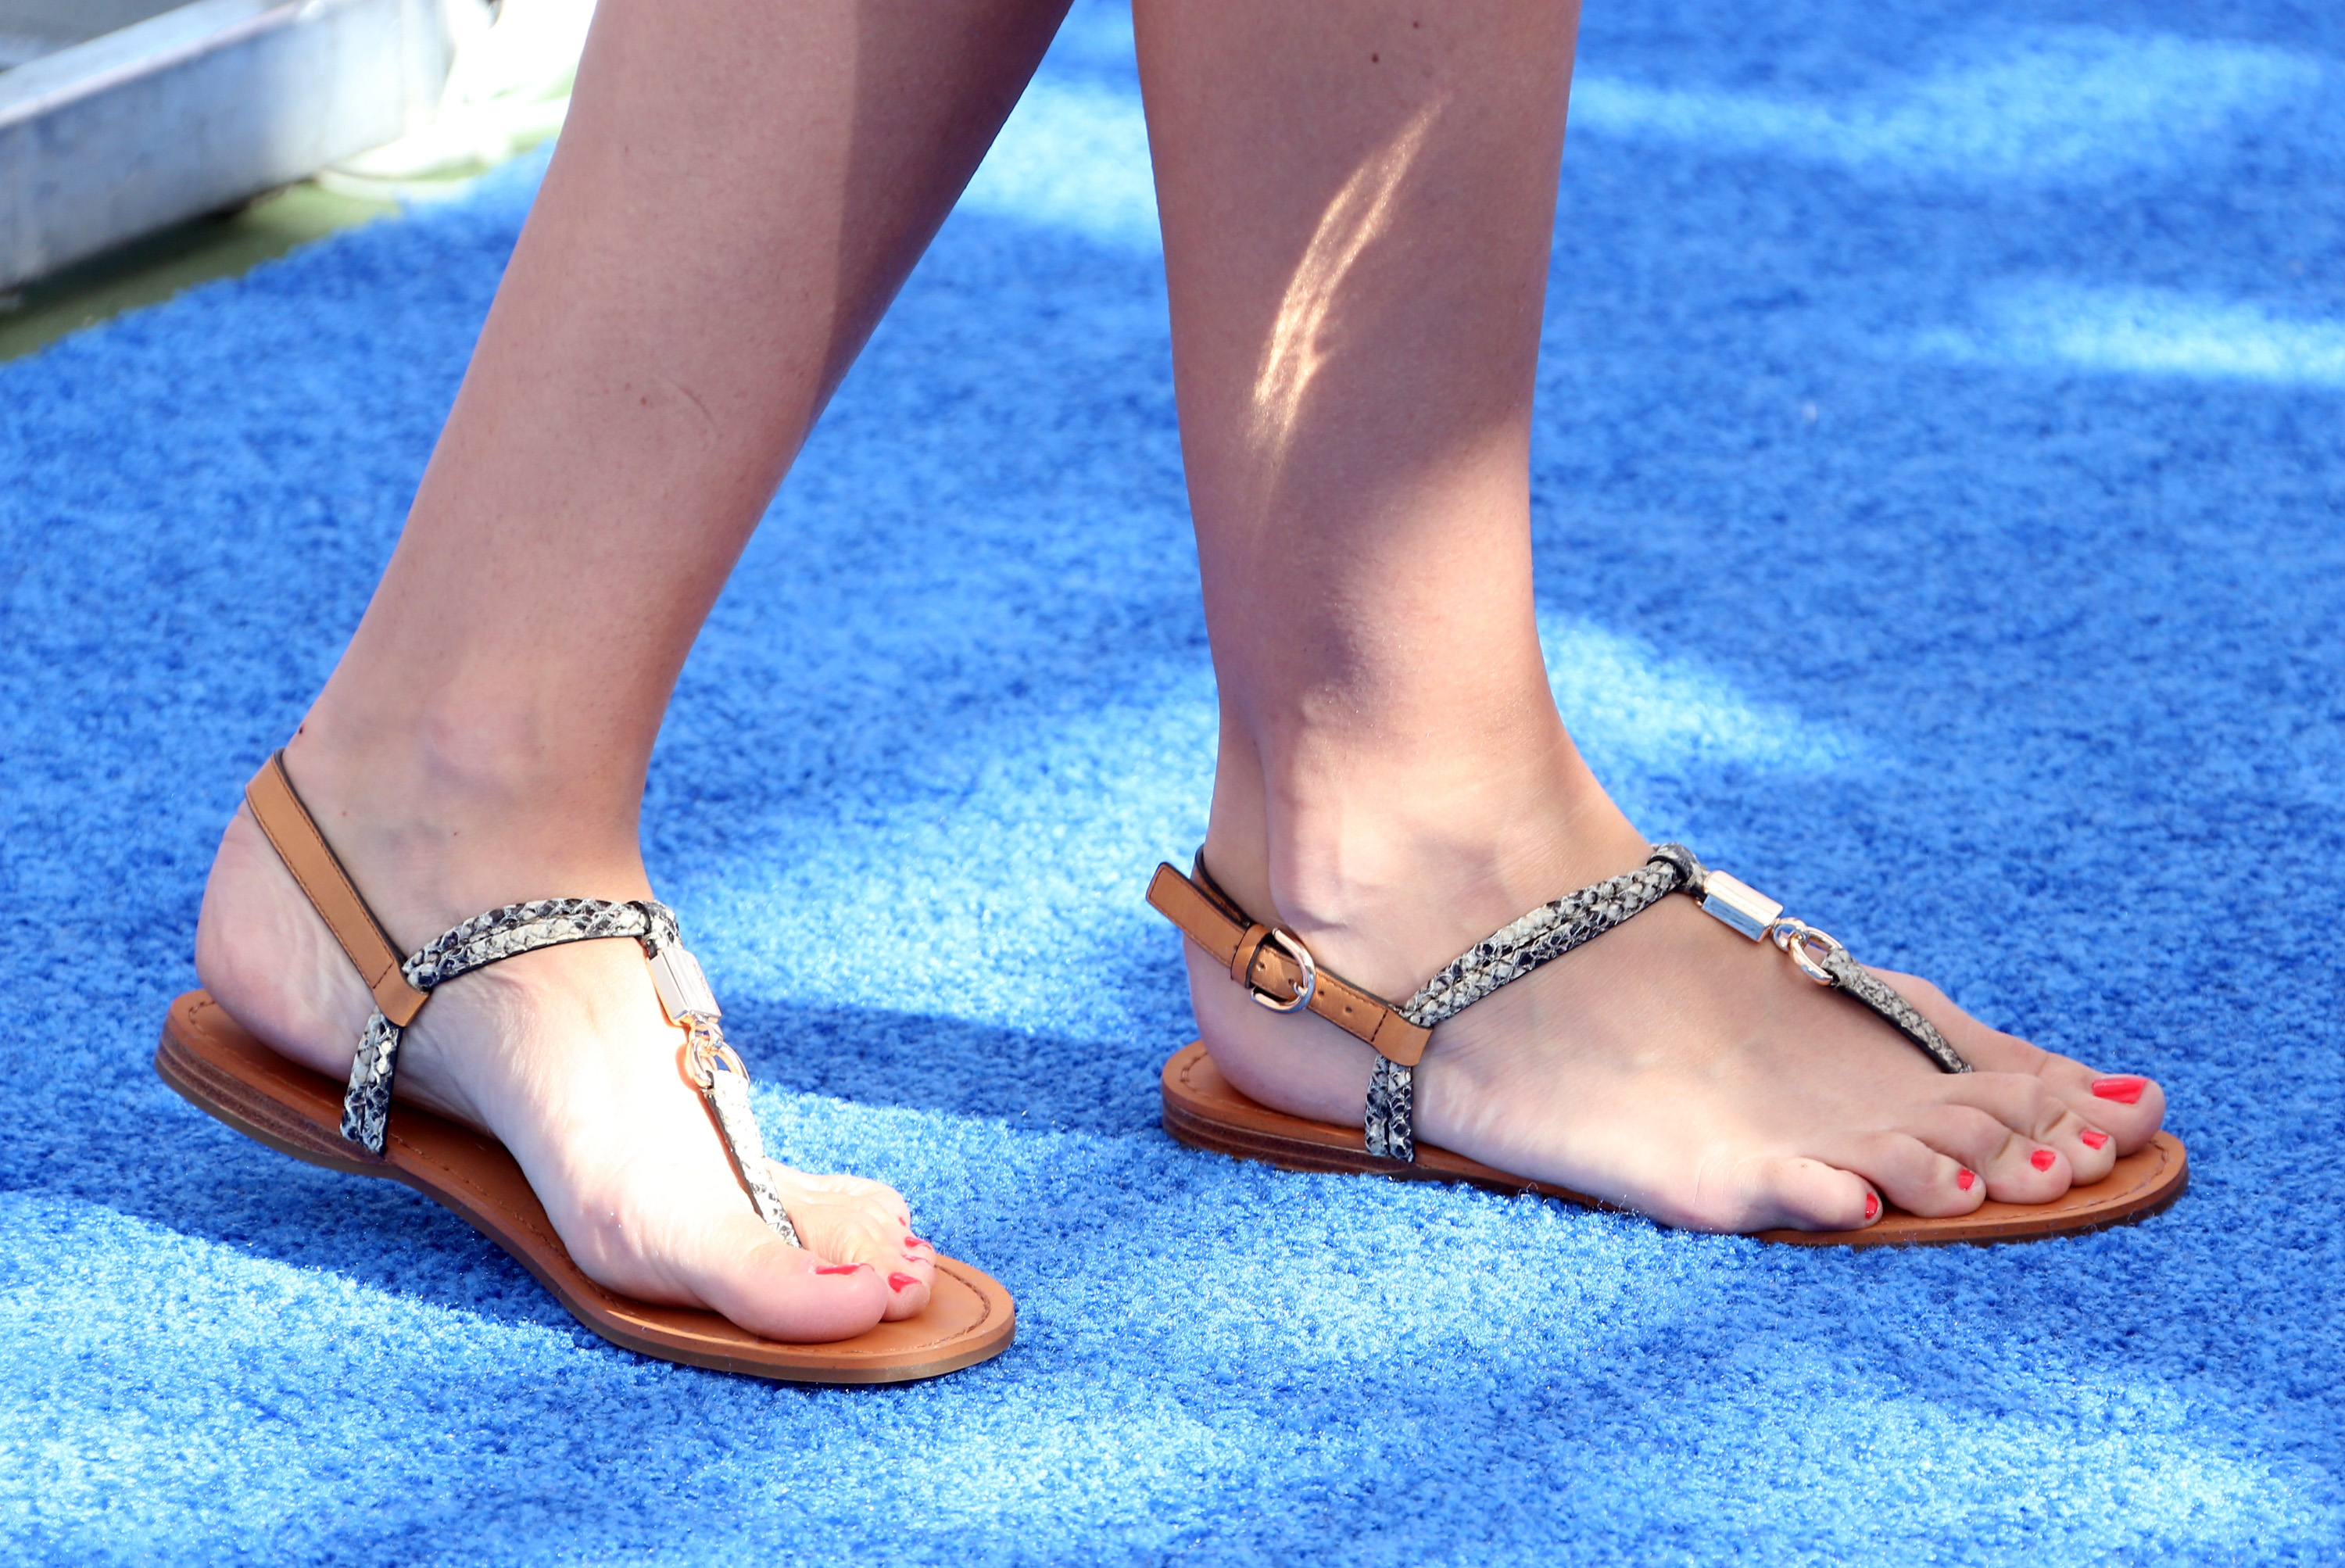 11 Wide Feet Shopping Tips To Help You Find The Most